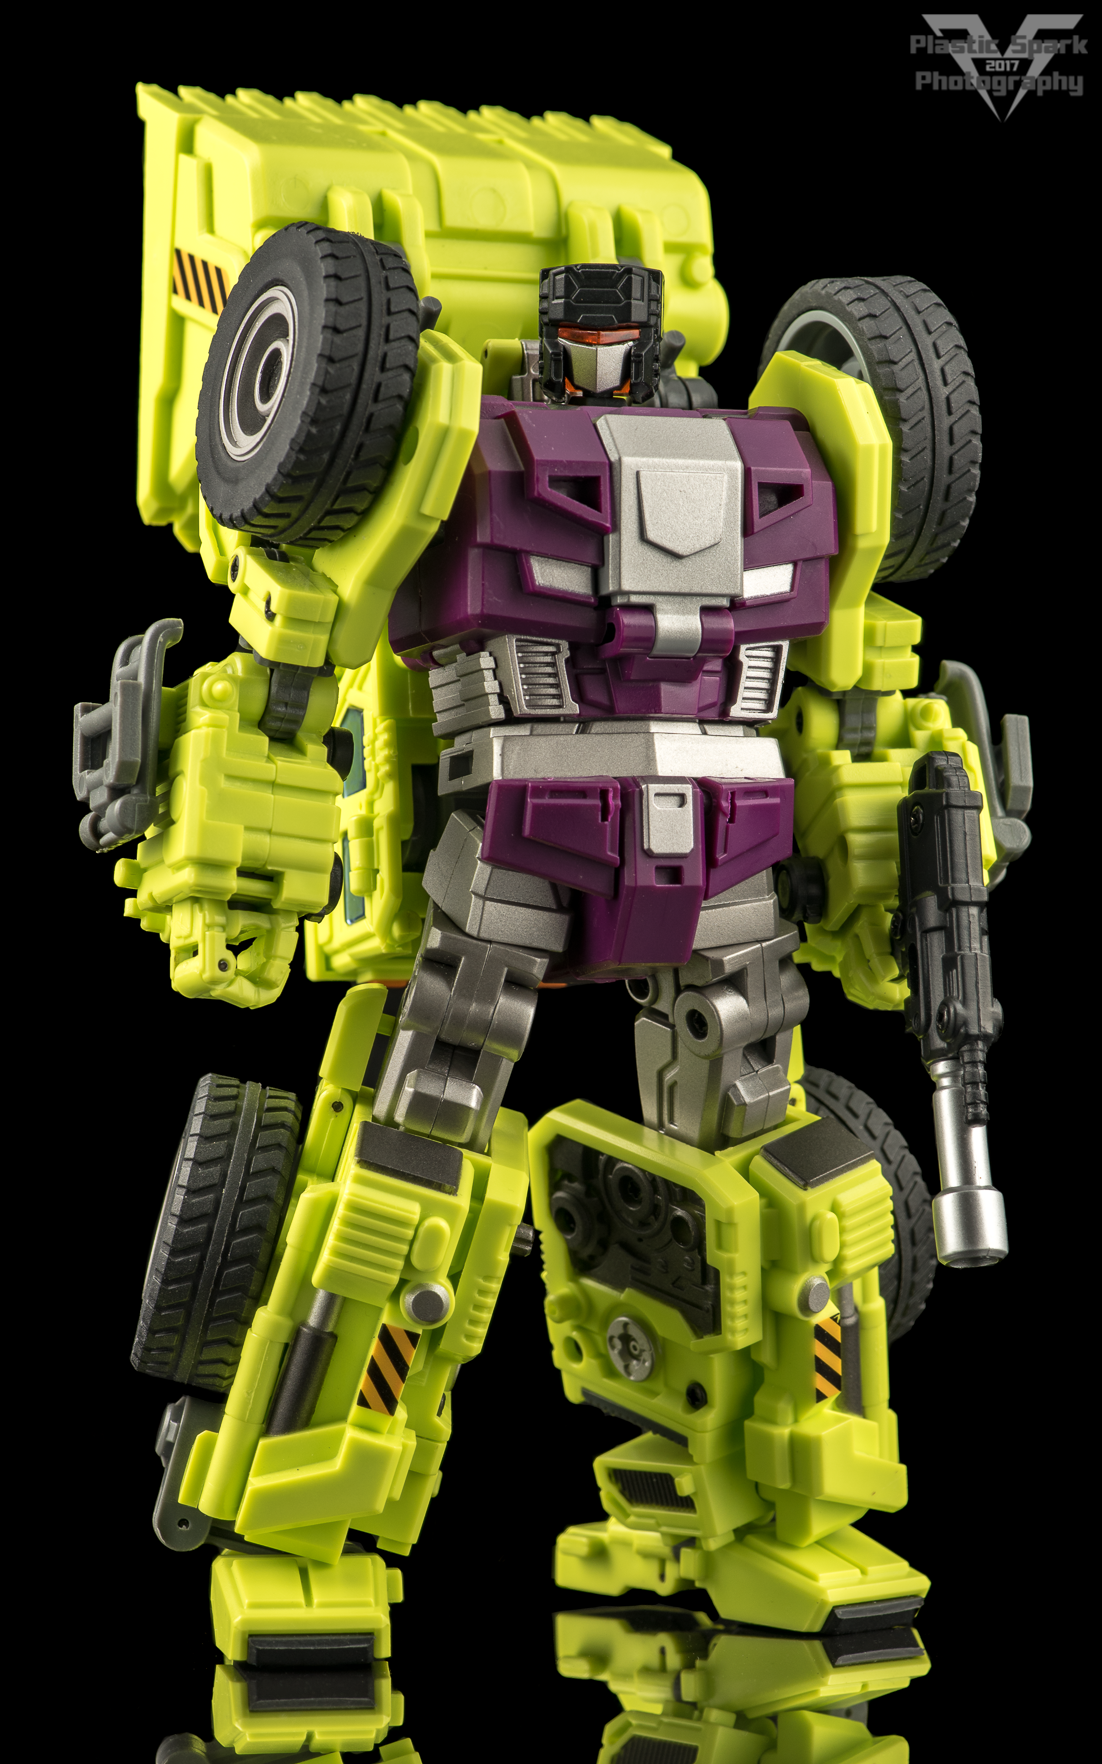 Generation-Toy-Gravity-Builder-(8-of-34).png